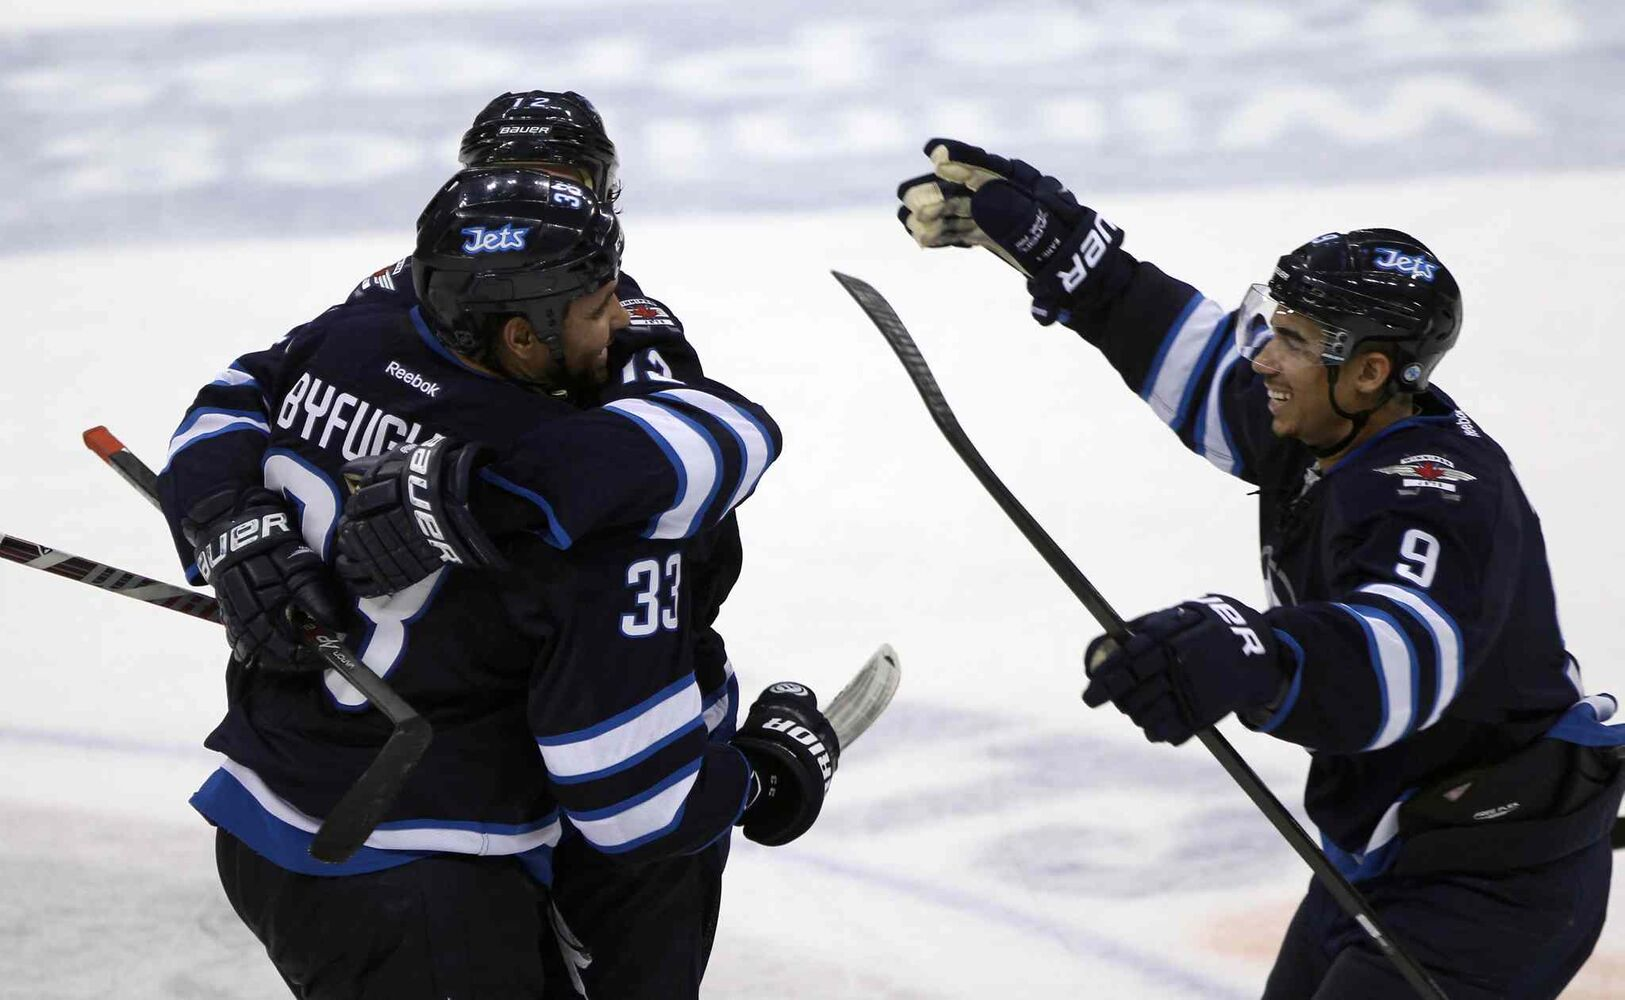 Winnipeg Jets defenceman Dustin Byfuglien (left) celebrates with Olli Jokinen and Evander Kane (right) during the third period after scoring the Jets' second goal to tie the game. (JOE BRYKSA / WINNIPEG FREE PRESS)